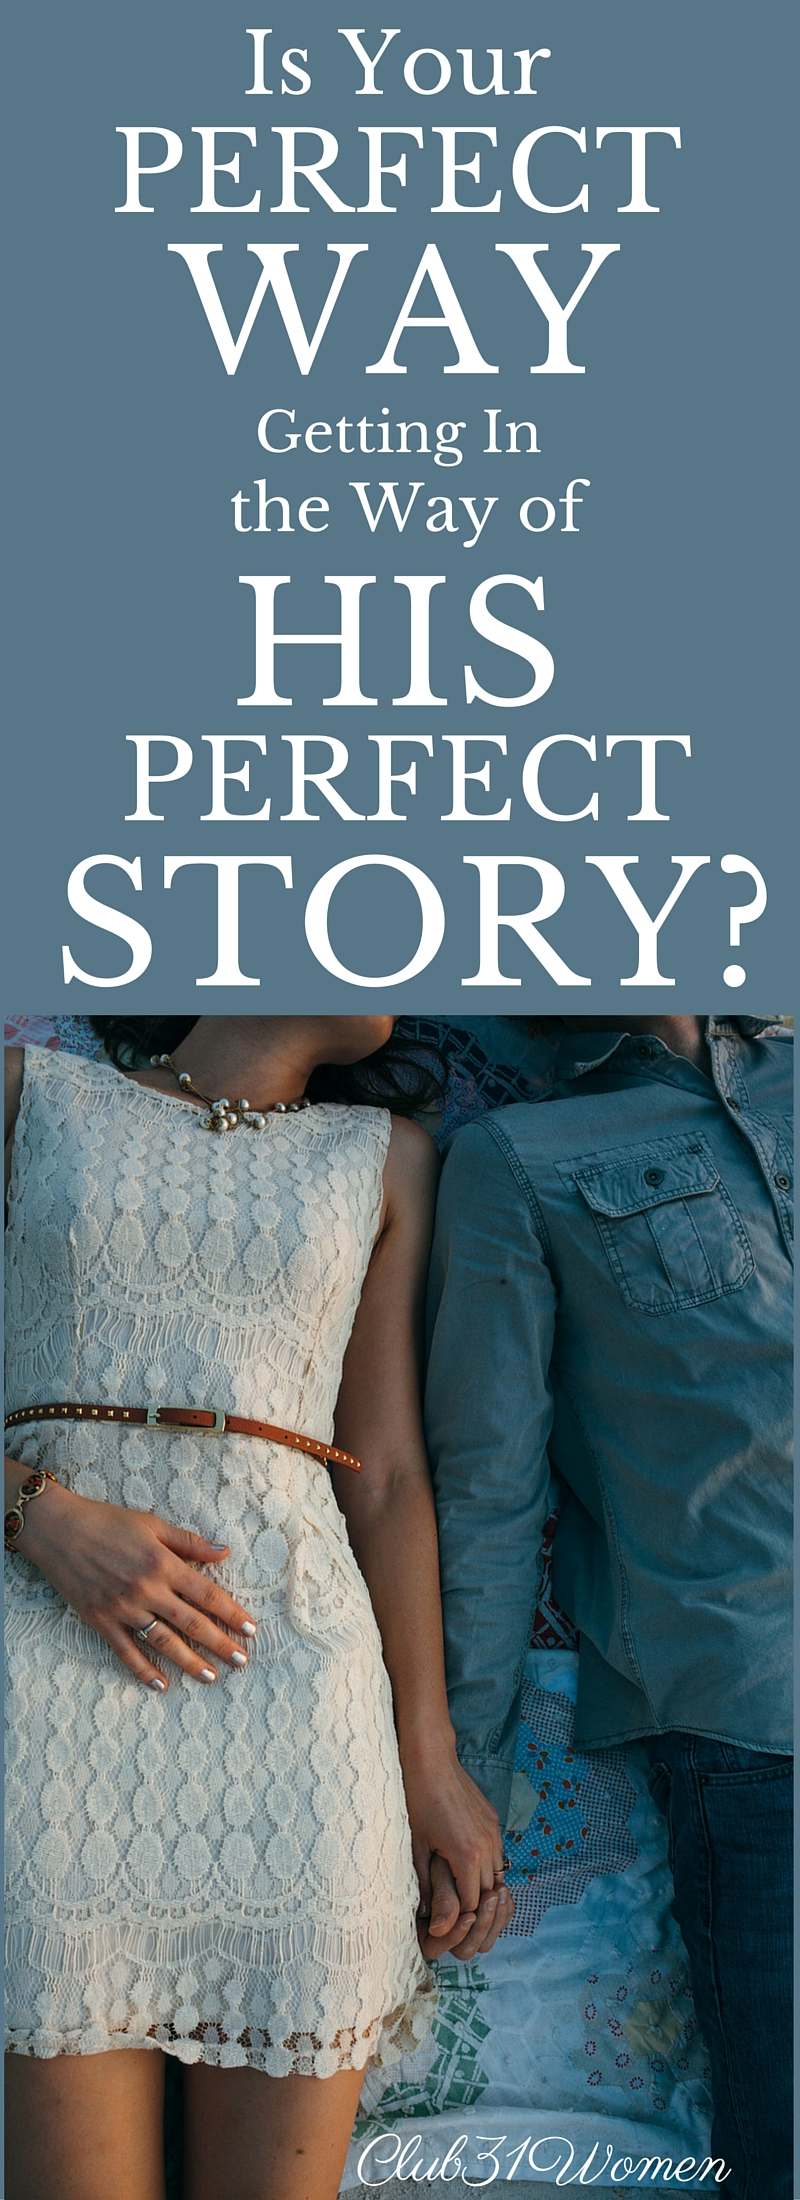 Is Your Perfect Way…Getting In the Way of His Perfect Story?